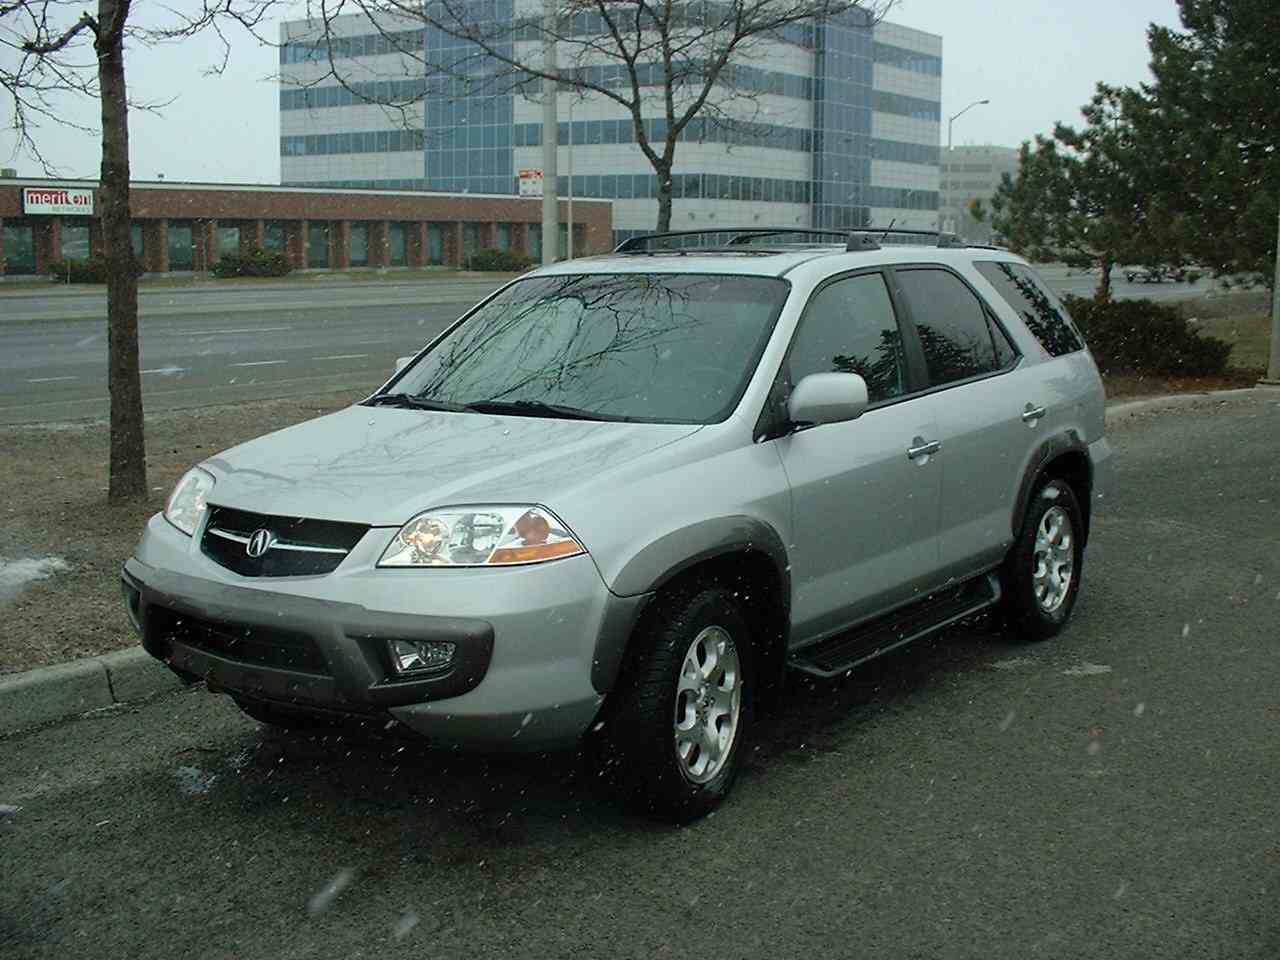 MDX For Sale Acura MDX Forum Acura MDX SUV Forums - Acura mdx 2001 for sale